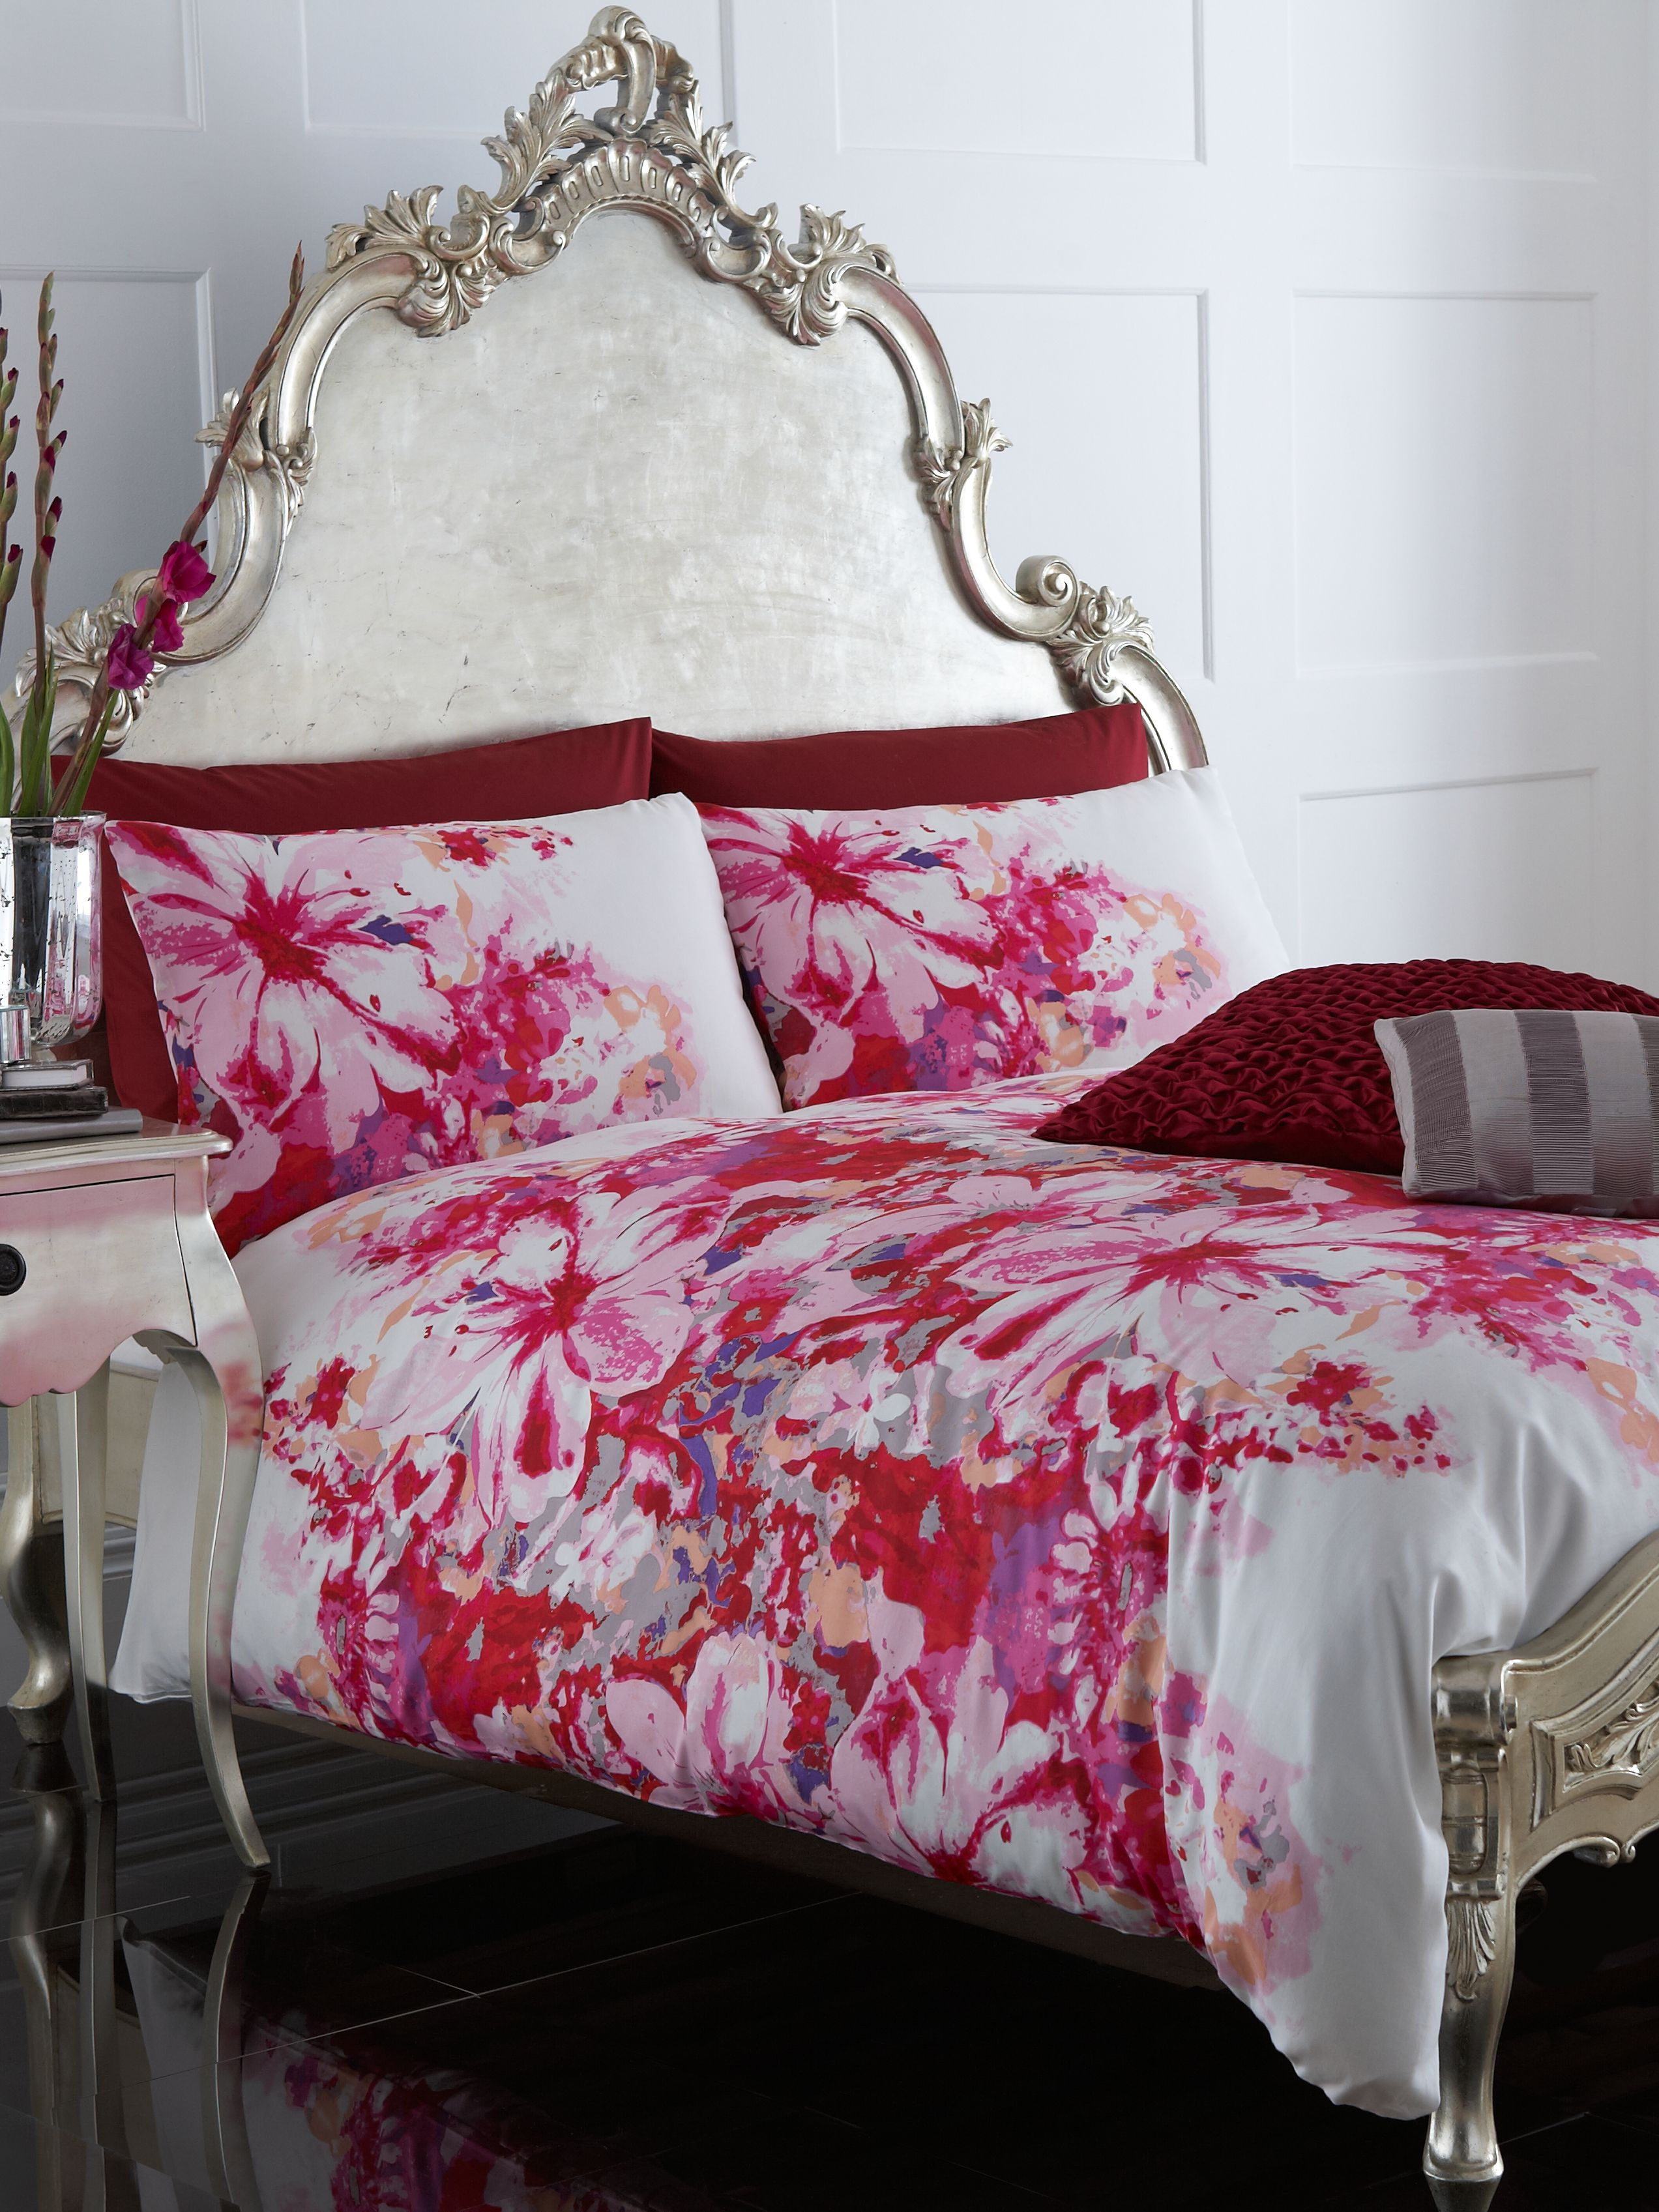 Lily Floral single duvet cover